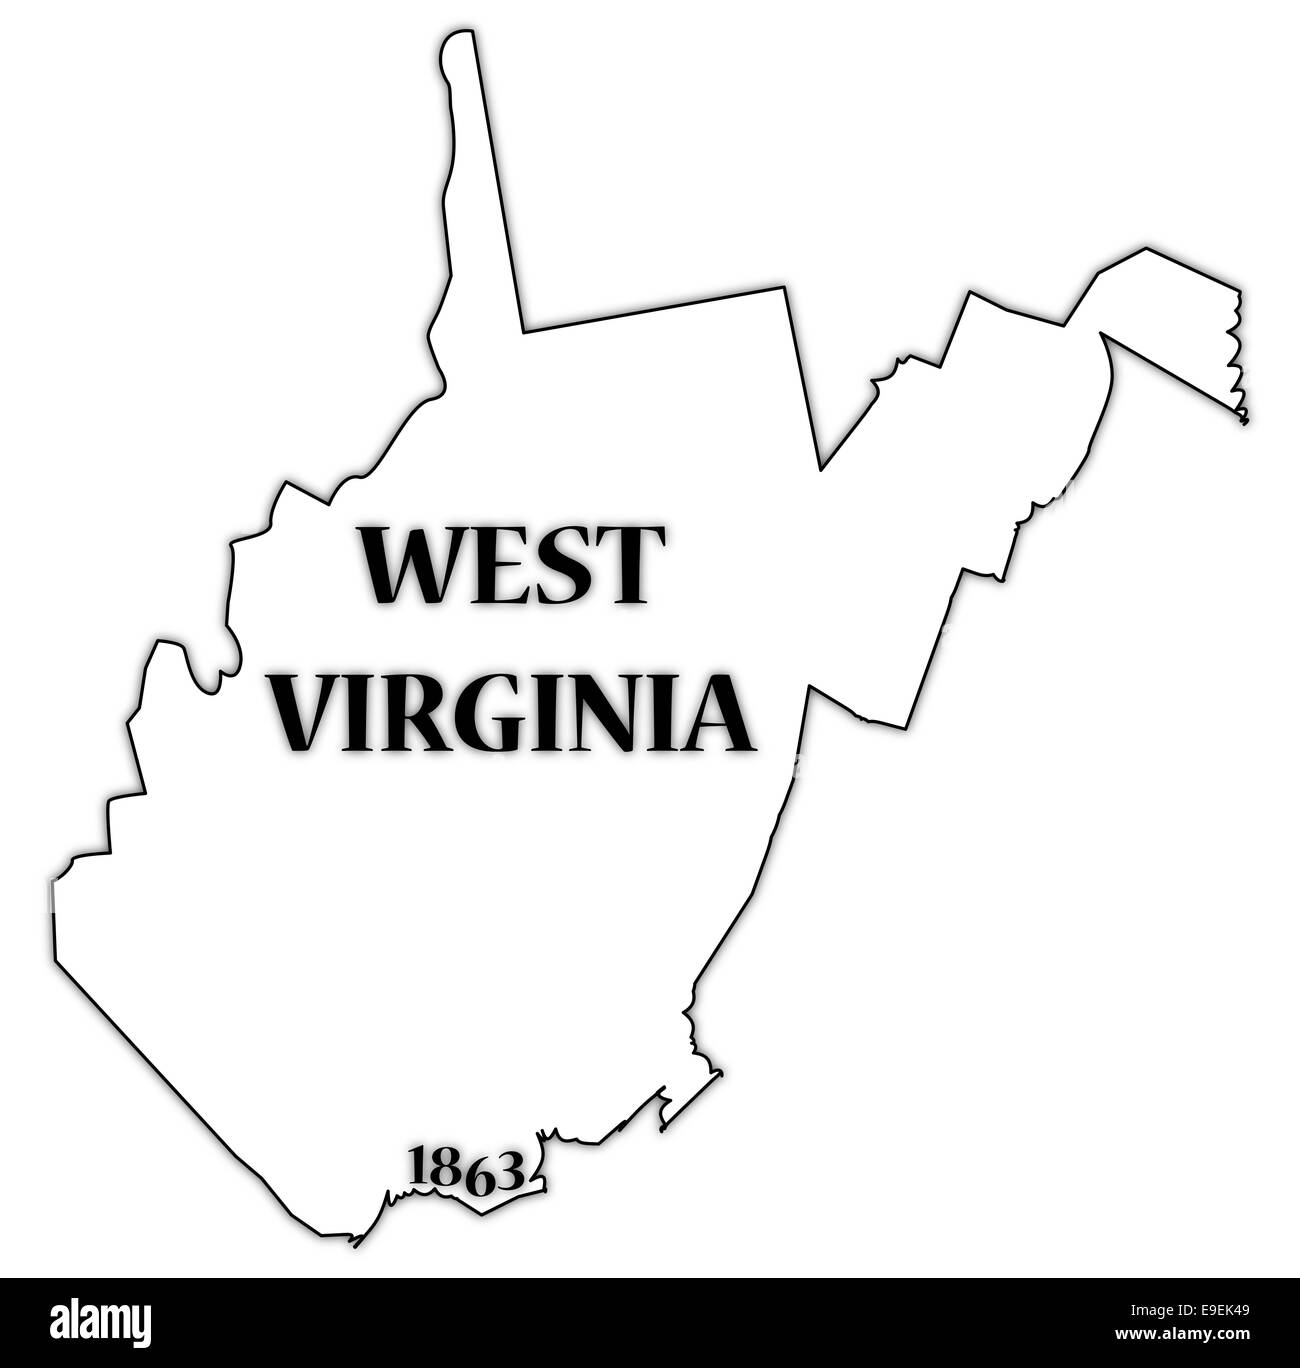 A West Virginia State Outline With The Date Of Statehood